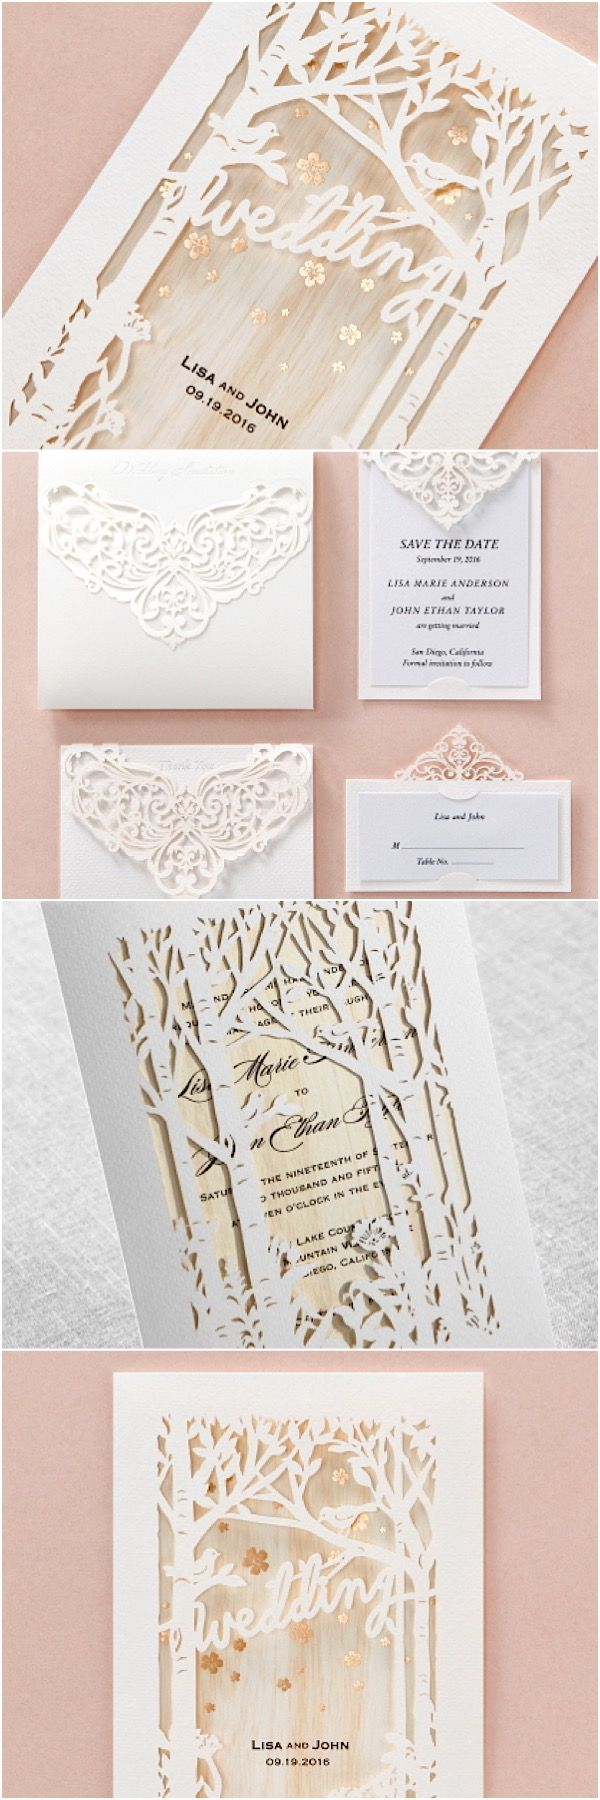 wedding invitation photo%0A Laser Cut Tree Wedding Invitation  Fall Wedding Invitation  Tree Wedding  Invite  Rustic Wedding Invitation  Autumn Wedding TREE    IVORY   Laser  cutting